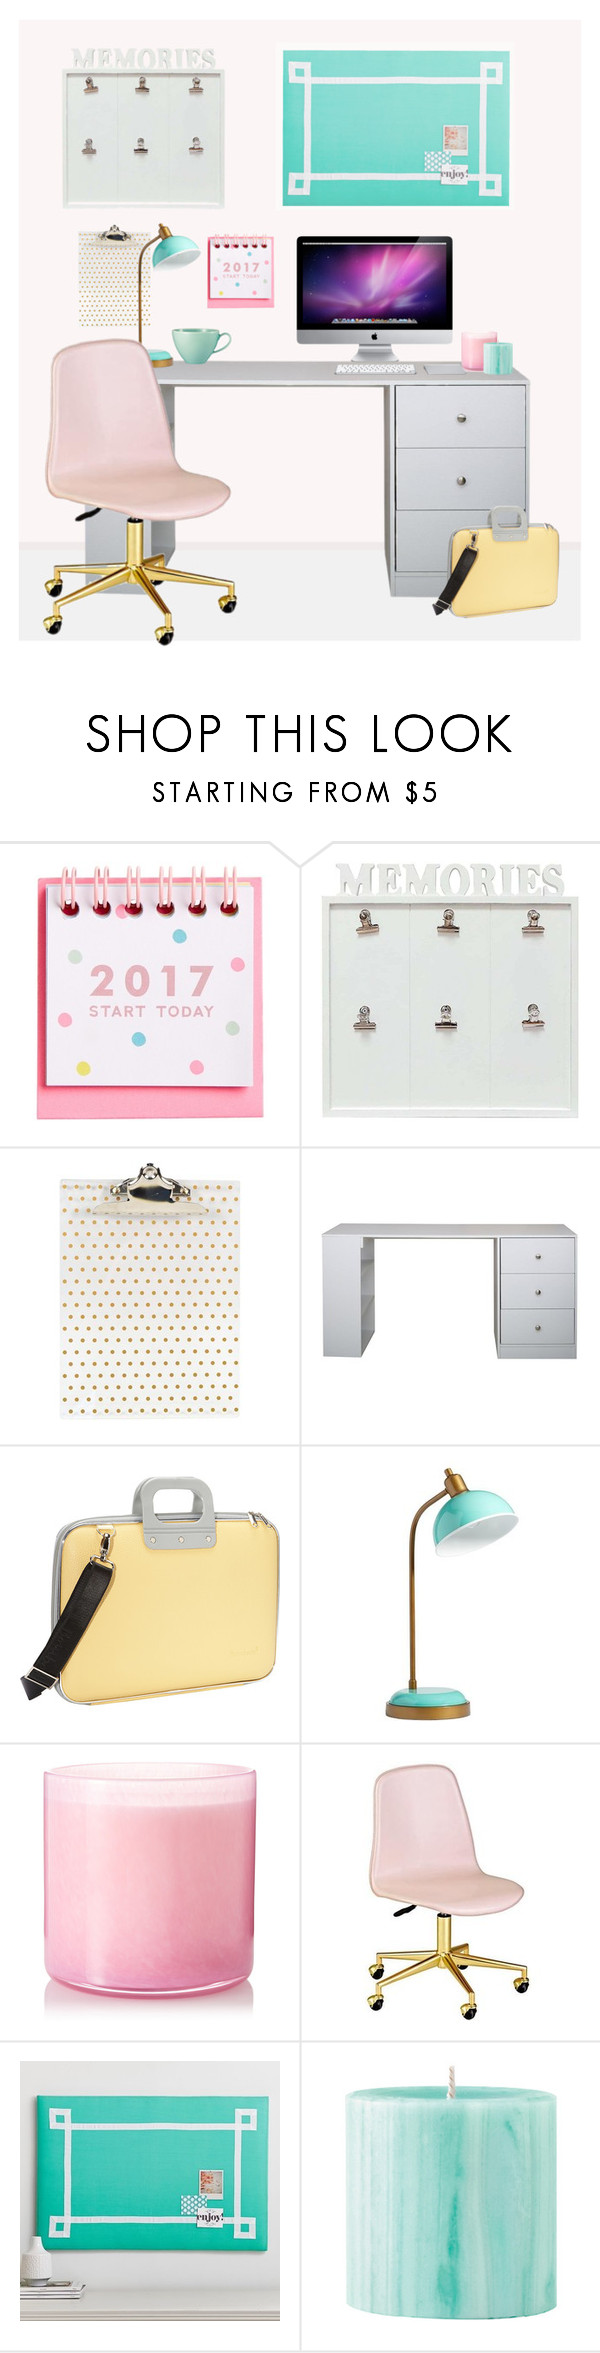 """""""Pretty Workspaces"""" by my-style-xo ❤ liked on Polyvore featuring interior, interiors, interior design, home, home decor, interior decorating, Concepts in Time, Bombata, PBteen and LAFCO"""